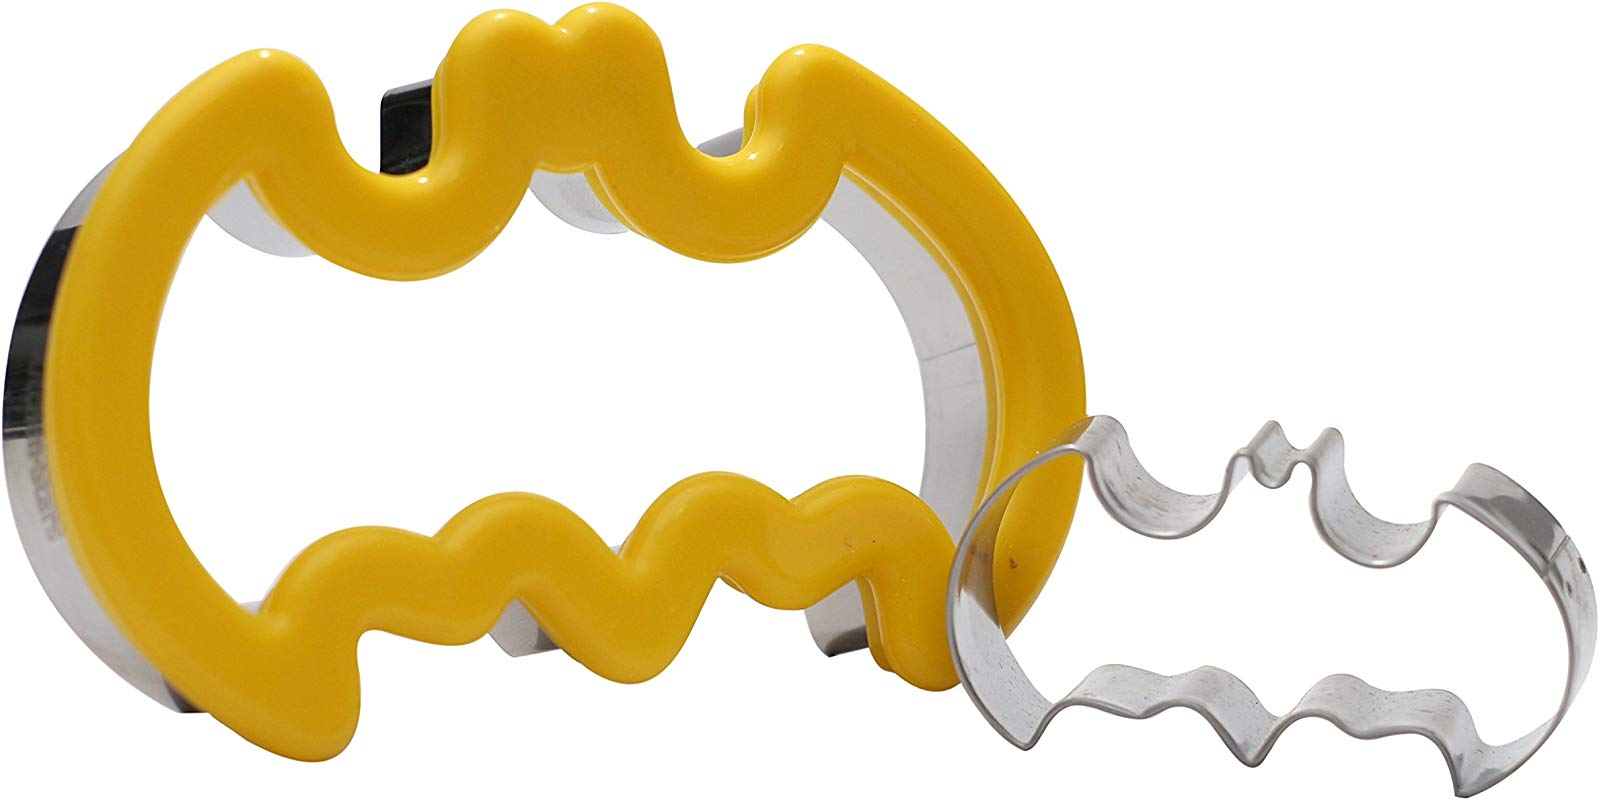 Batman LOGO Cookie Cutter Set Large Cookie Cutter Stainless Steel Metal With Silicone Comfort Grip And FREE Small SS Cupcake Mini Cutter For Kids And Adults By Kitchen Stars